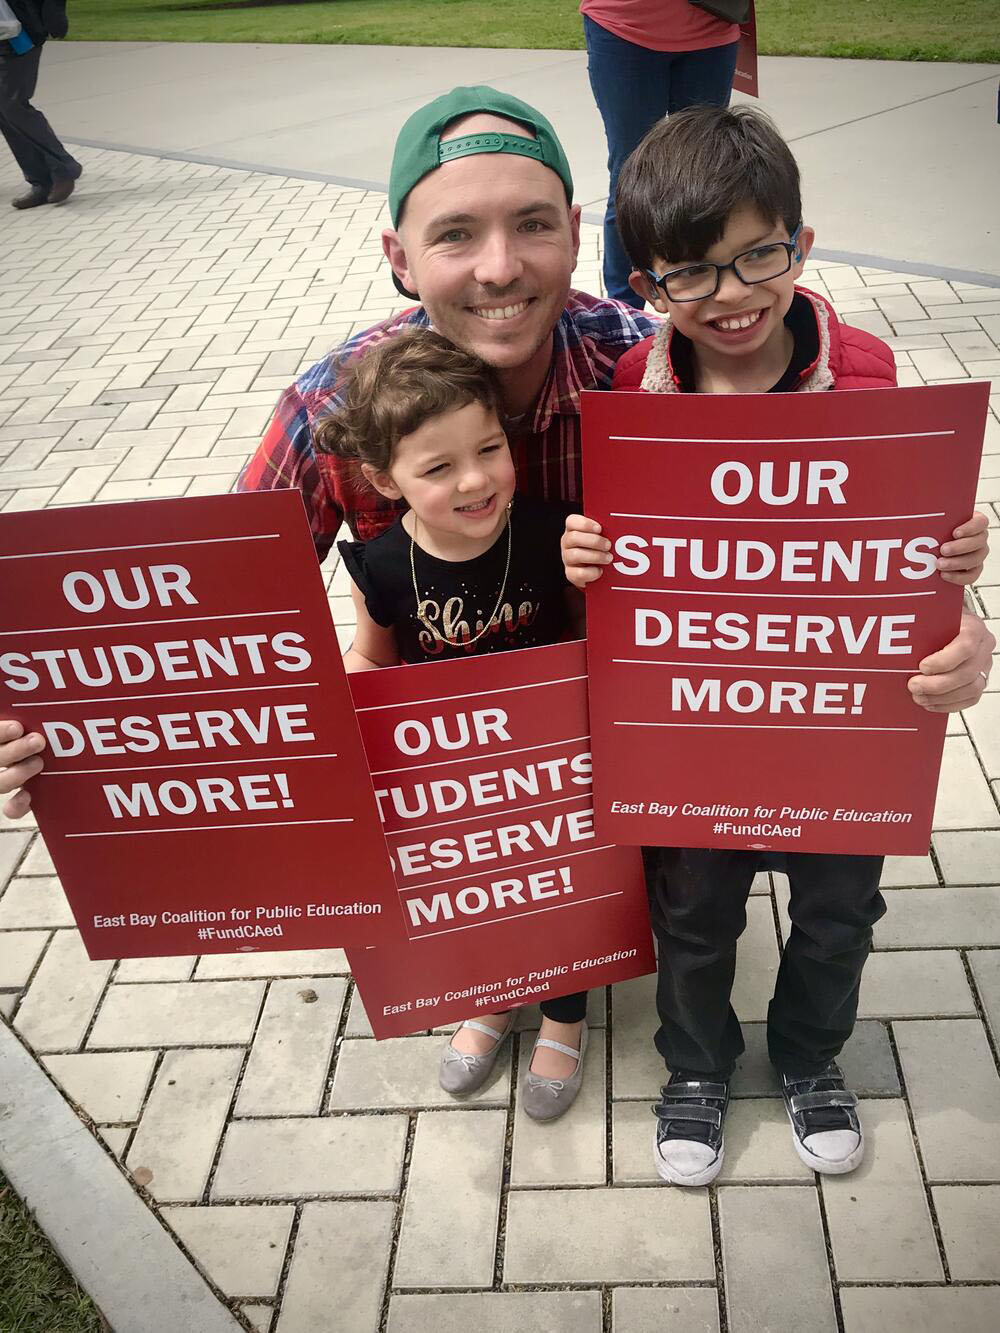 Alameda Unified School District &nbsp&nbsp Maya Lin School teacher Brian Dodson advocates for student rights at an education rally. The school district named him the 2020 AUSD Teacher of the Year on June 16. He has taught for AUSD for eight years.